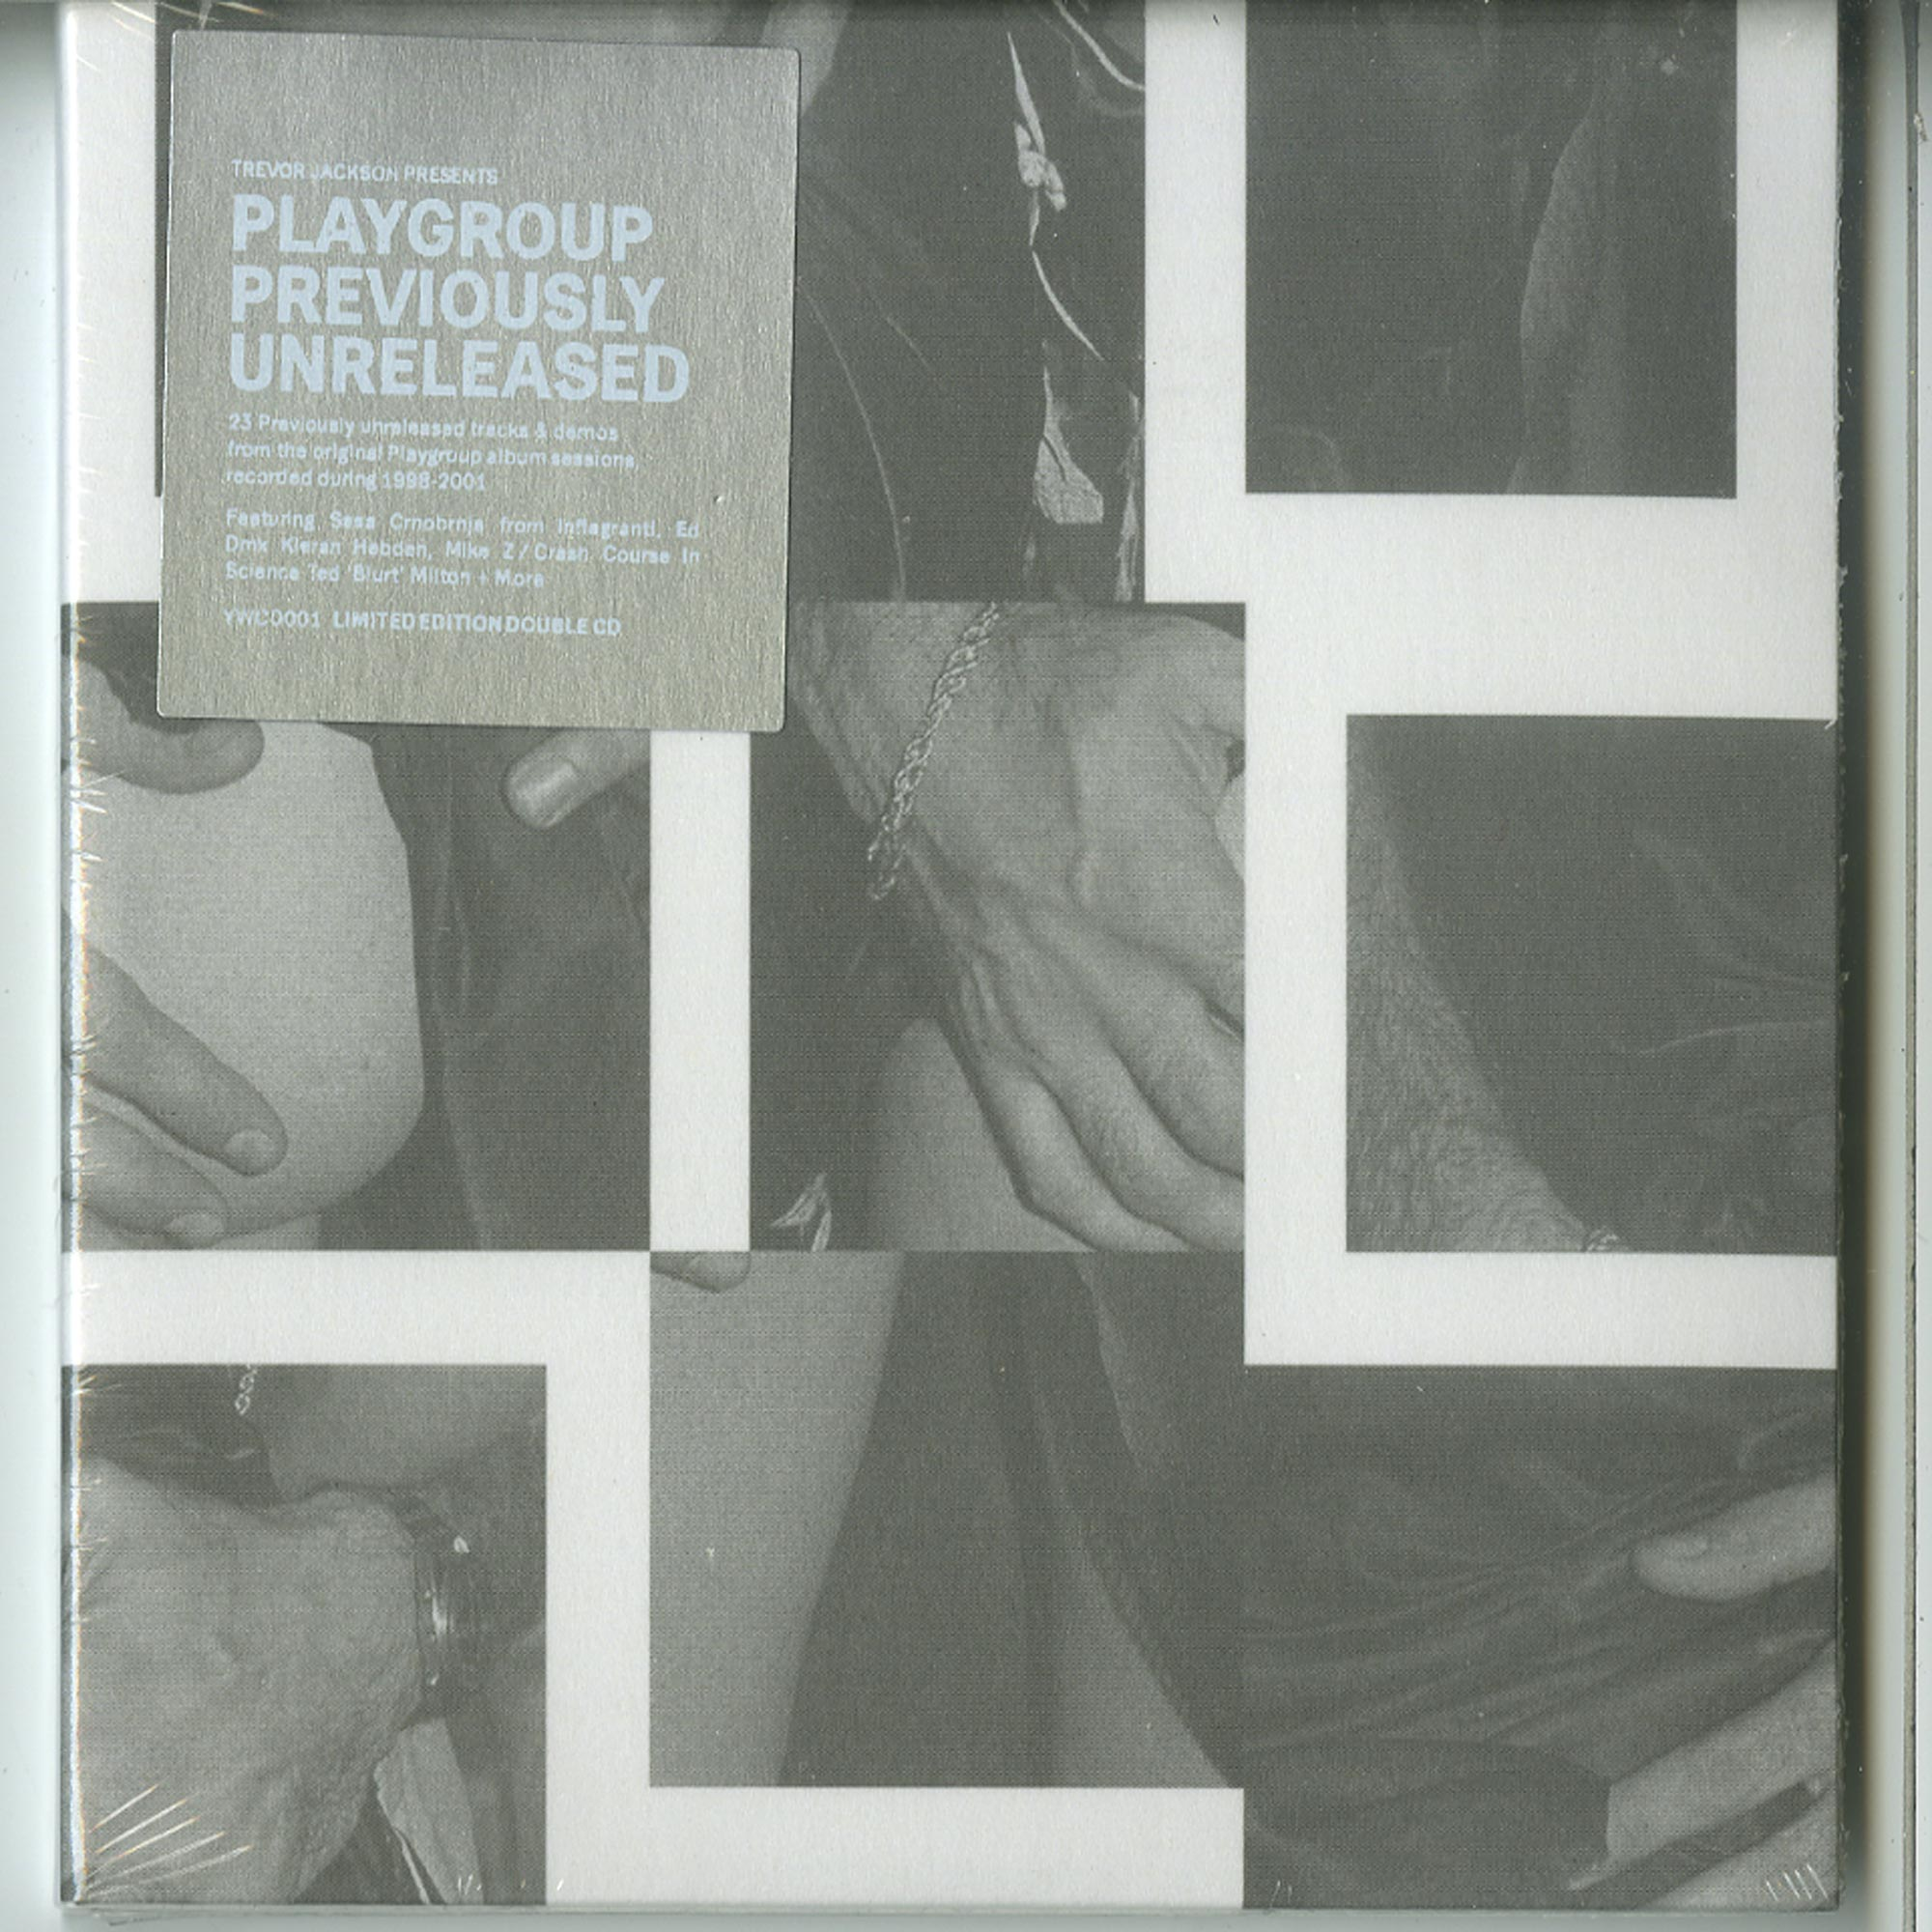 Playgroup - PREVIOUSLY UNRELEASED